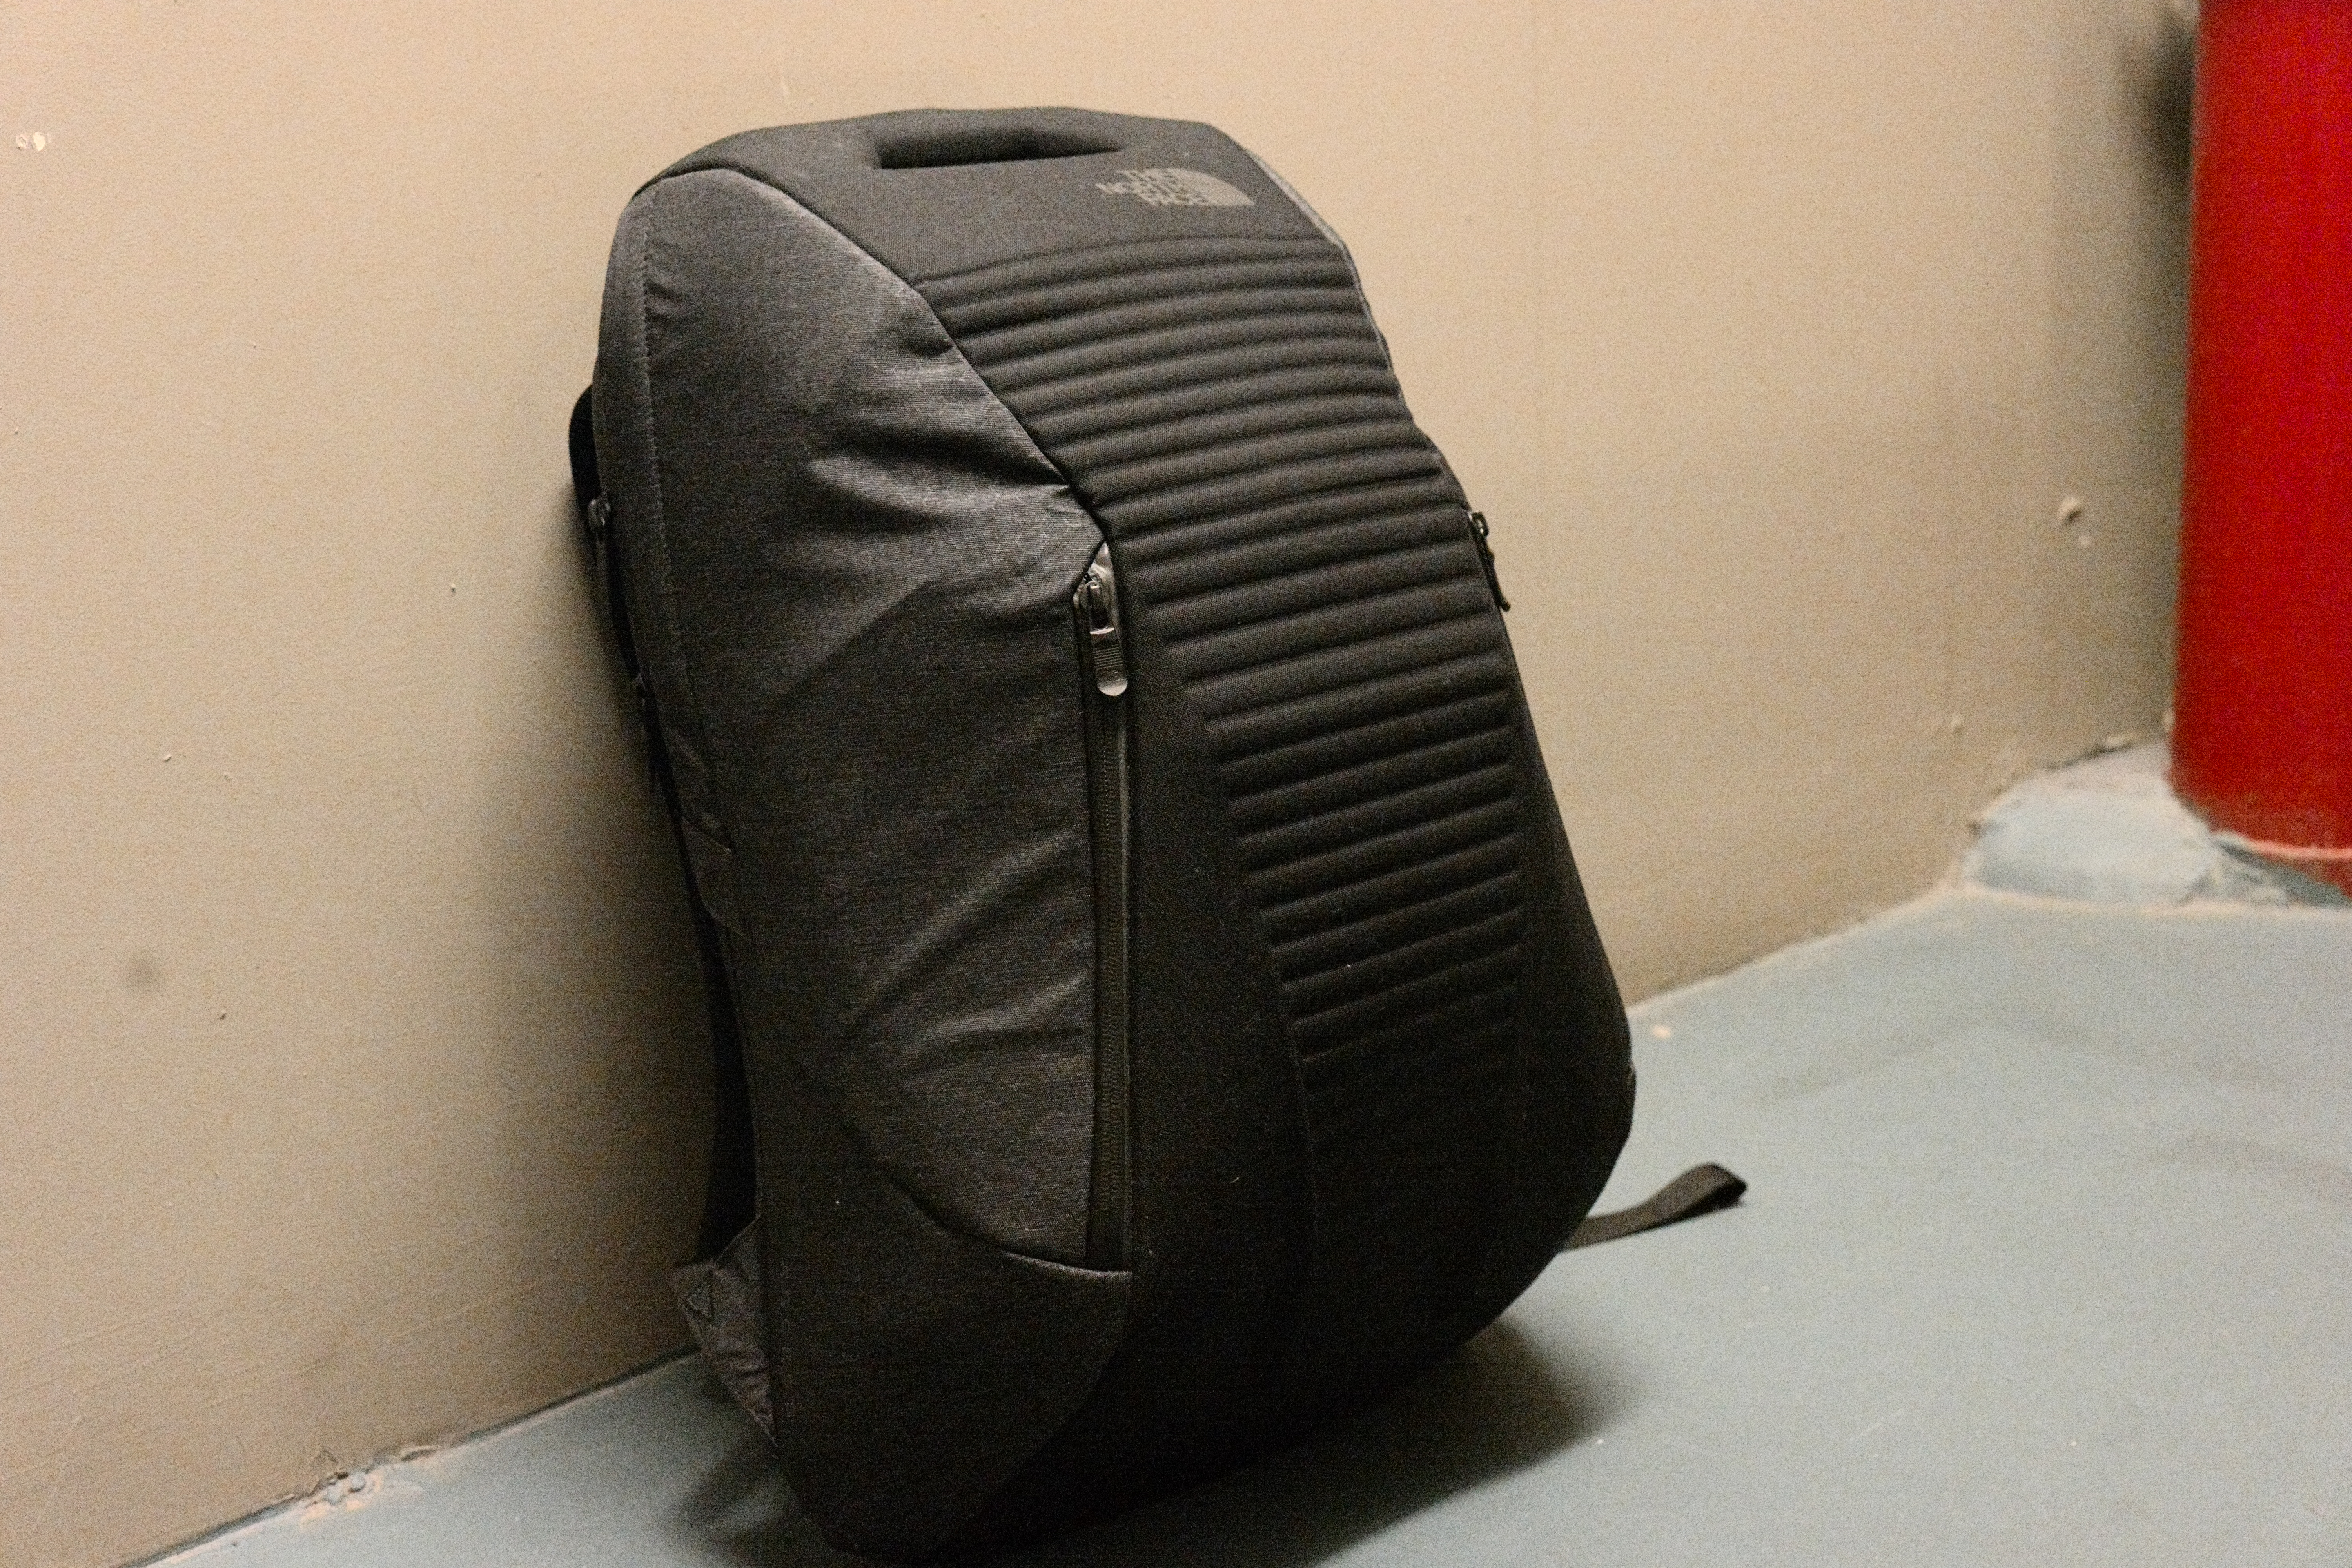 a2653220e18 Review: The North Face's Access Pack is a backpack design that ...